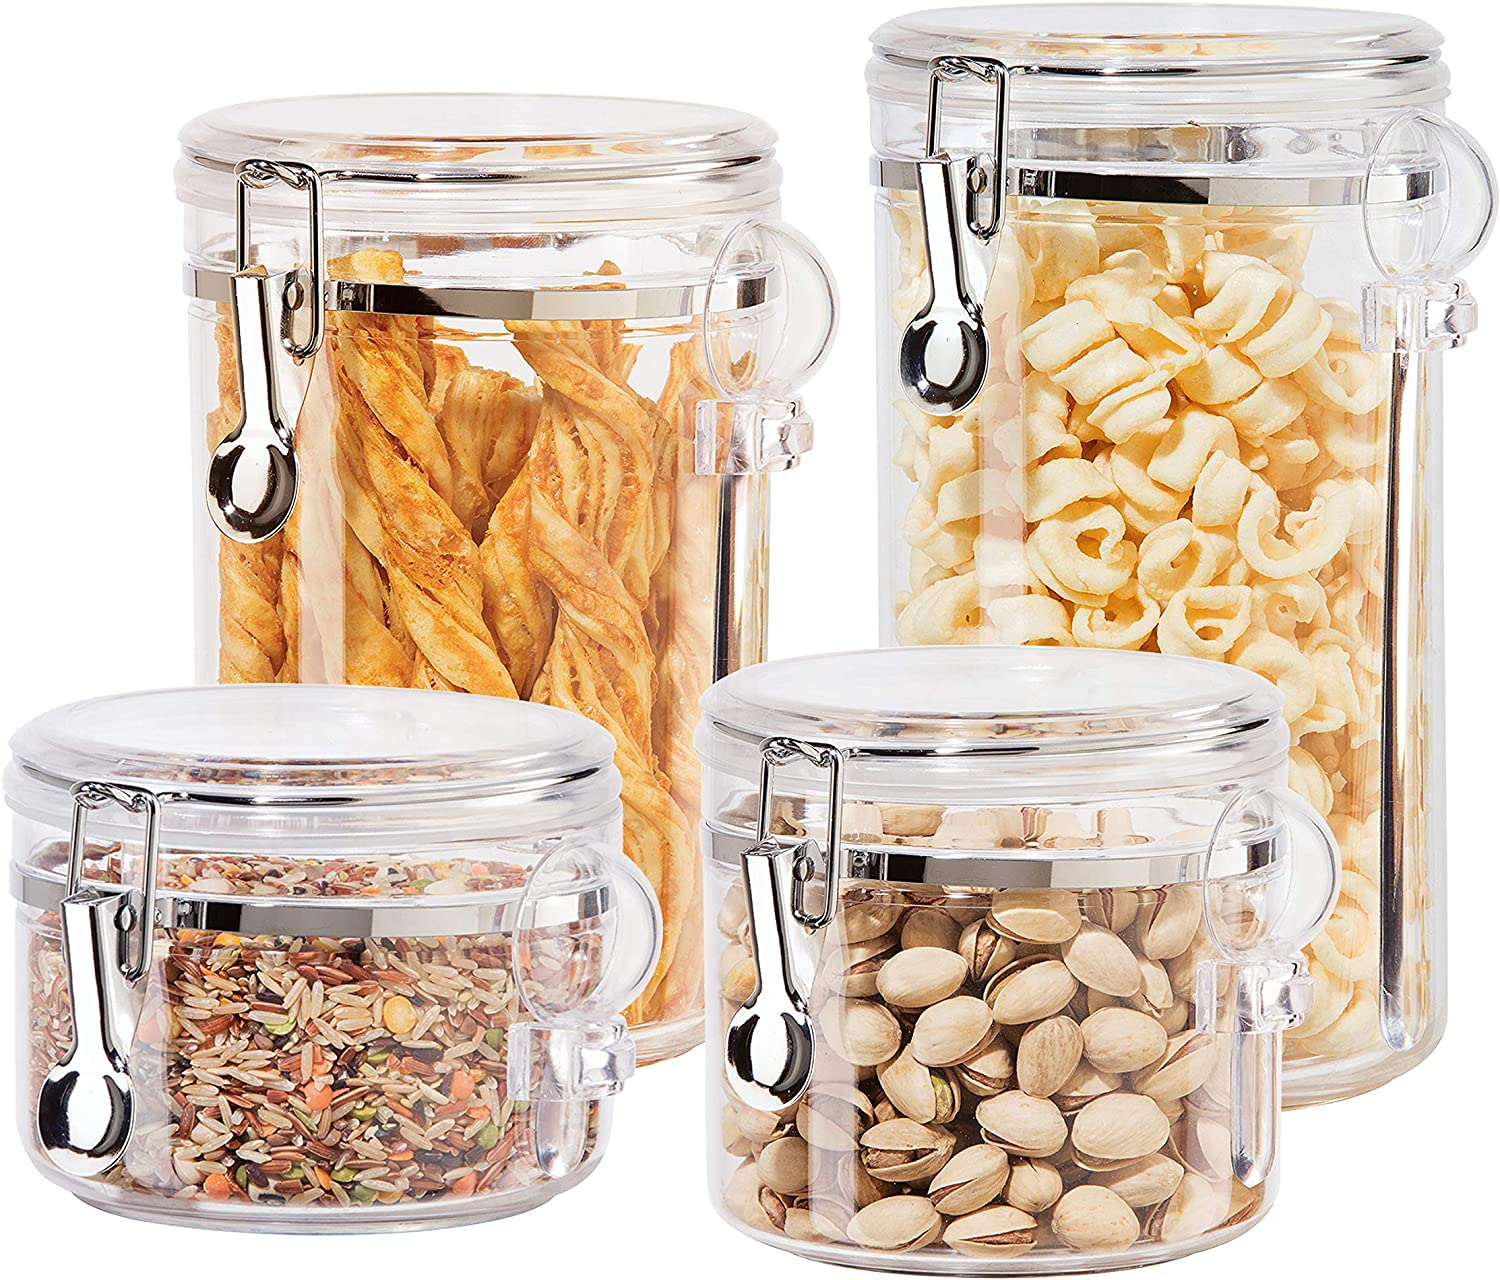 Amazon Com Oggi 4pc Clear Canister Set With Clamp Lids Spoons Airtight Containers In Sizes Ideal For Kitchen Pantry Storage Of Bulk Dry Foods Including Flour Sugar Coffee Rice Tea Spices Herbs